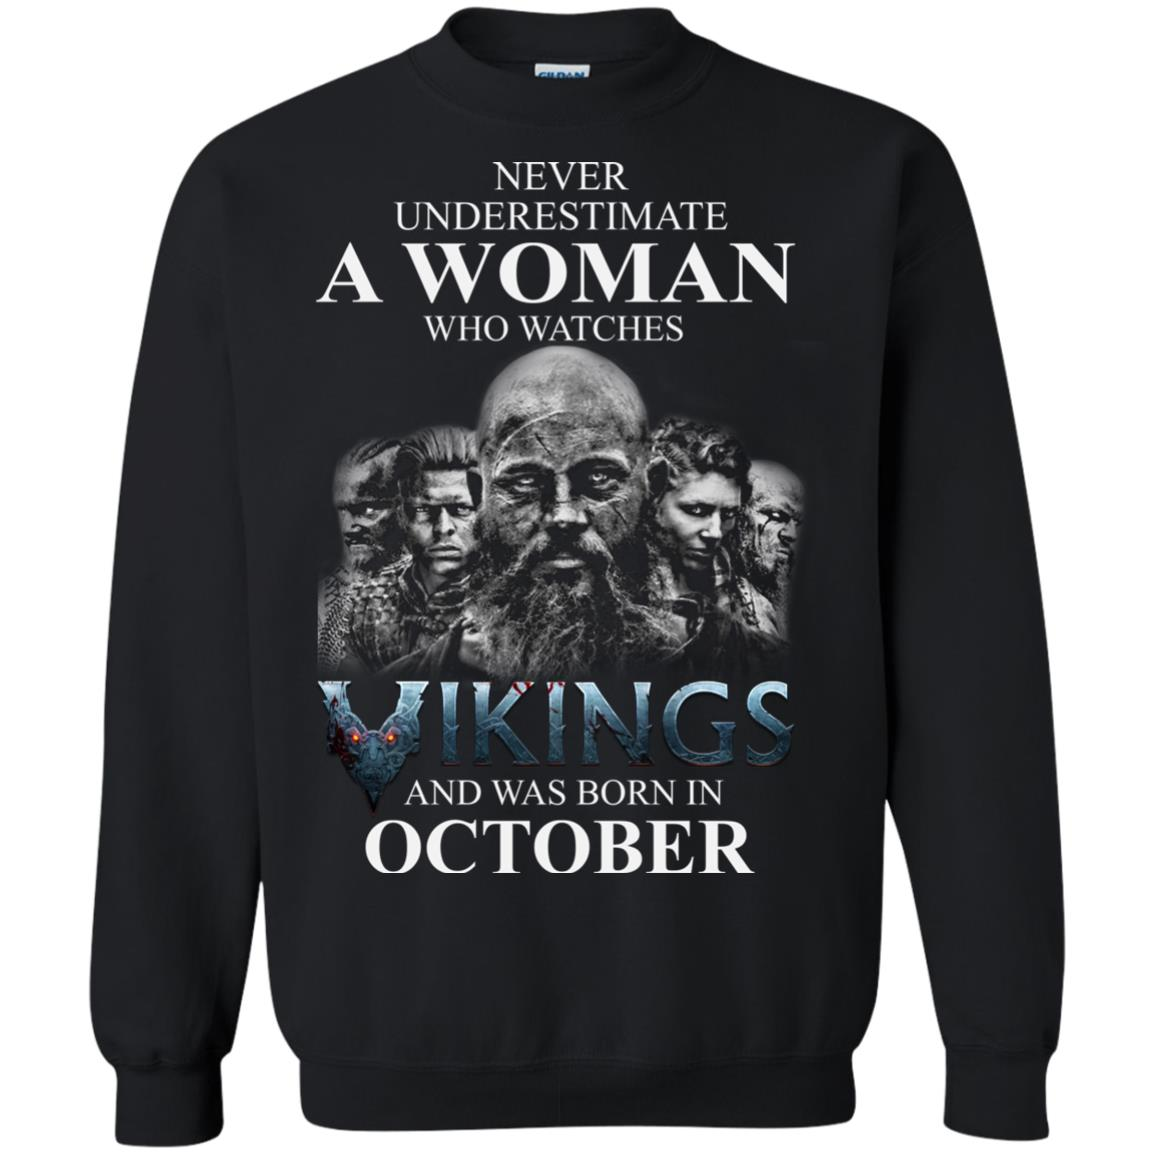 image 1249 - Never Underestimate A woman who watches Vikings and was born in October shirt